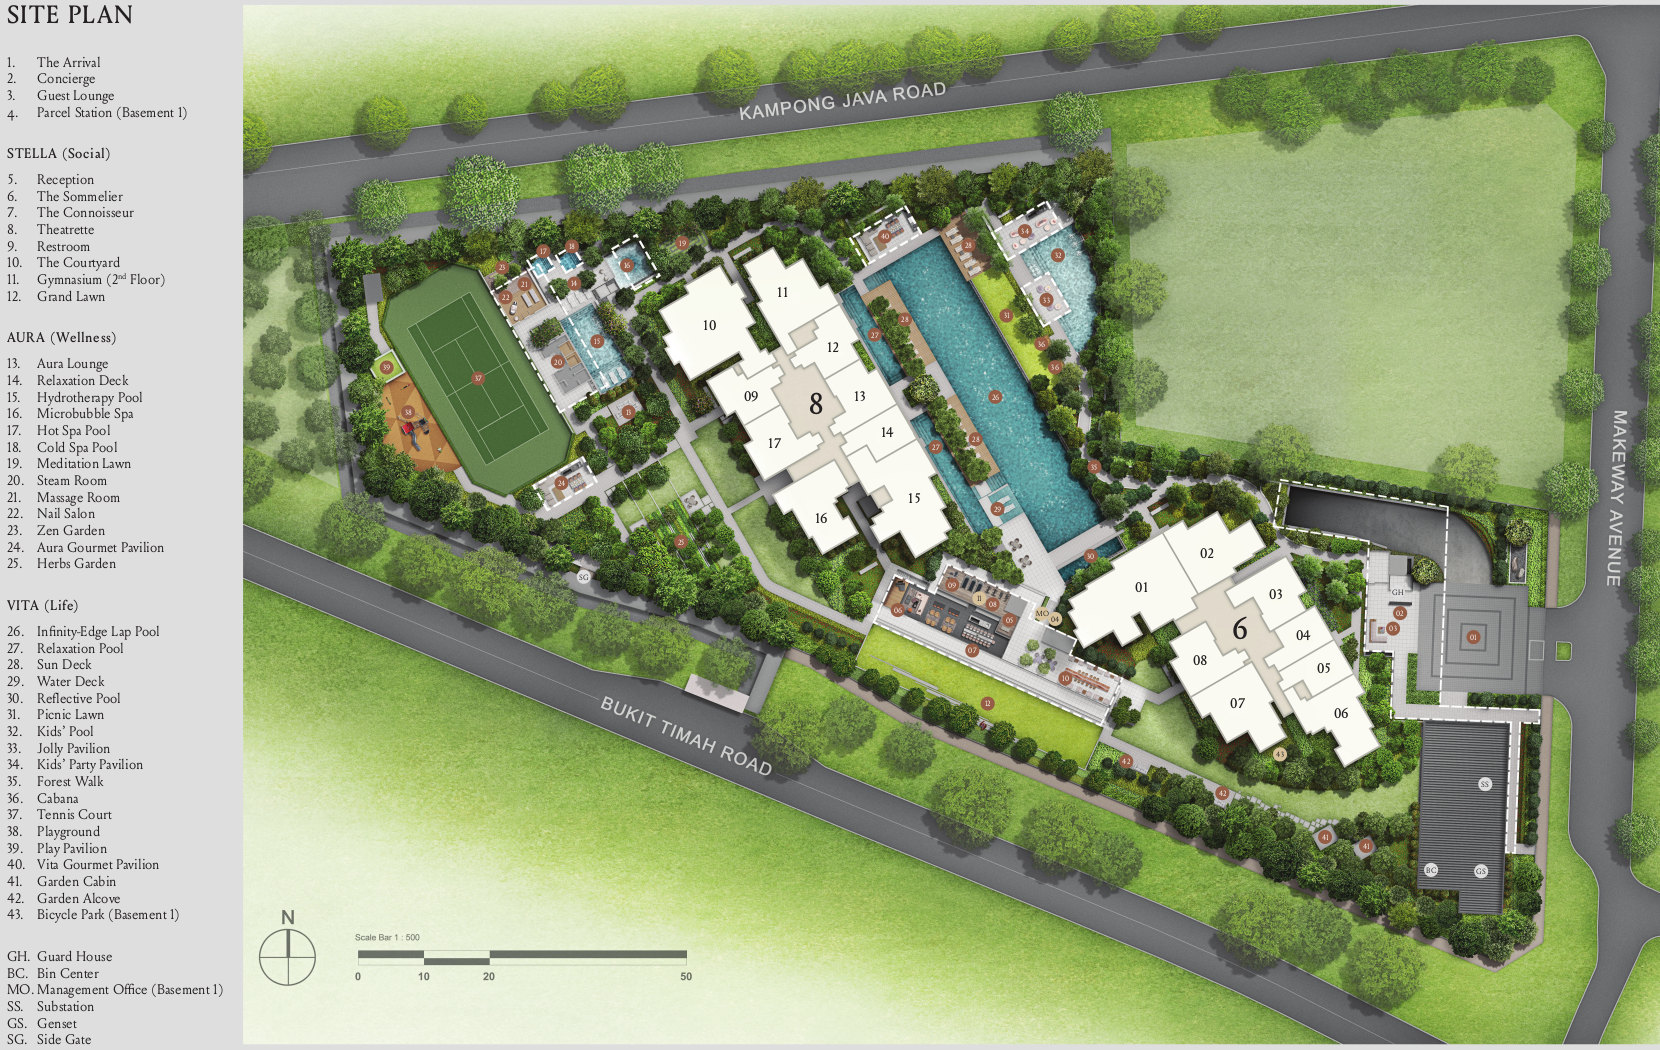 Kopar Site Layout Plan